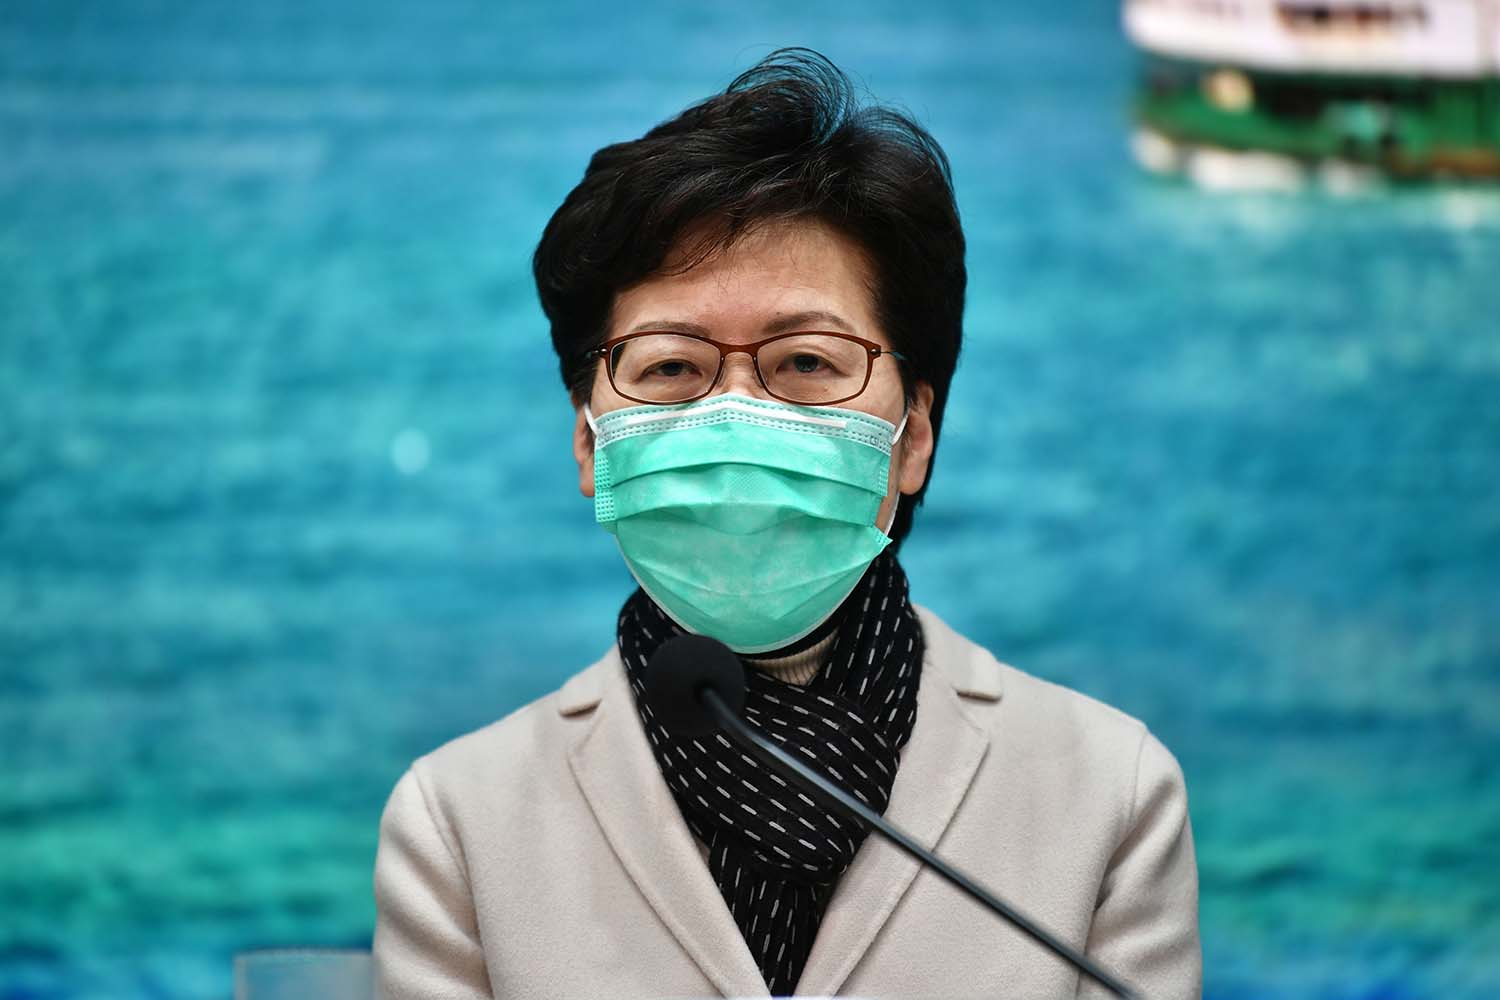 Hong Kong's Chief Executive Carrie Lam wears a face mask during a news conference in Hong Kong on Jan. 28 to update the territory on the coronovirus situation there. ANTHONY WALLACE/AFP via Getty Images